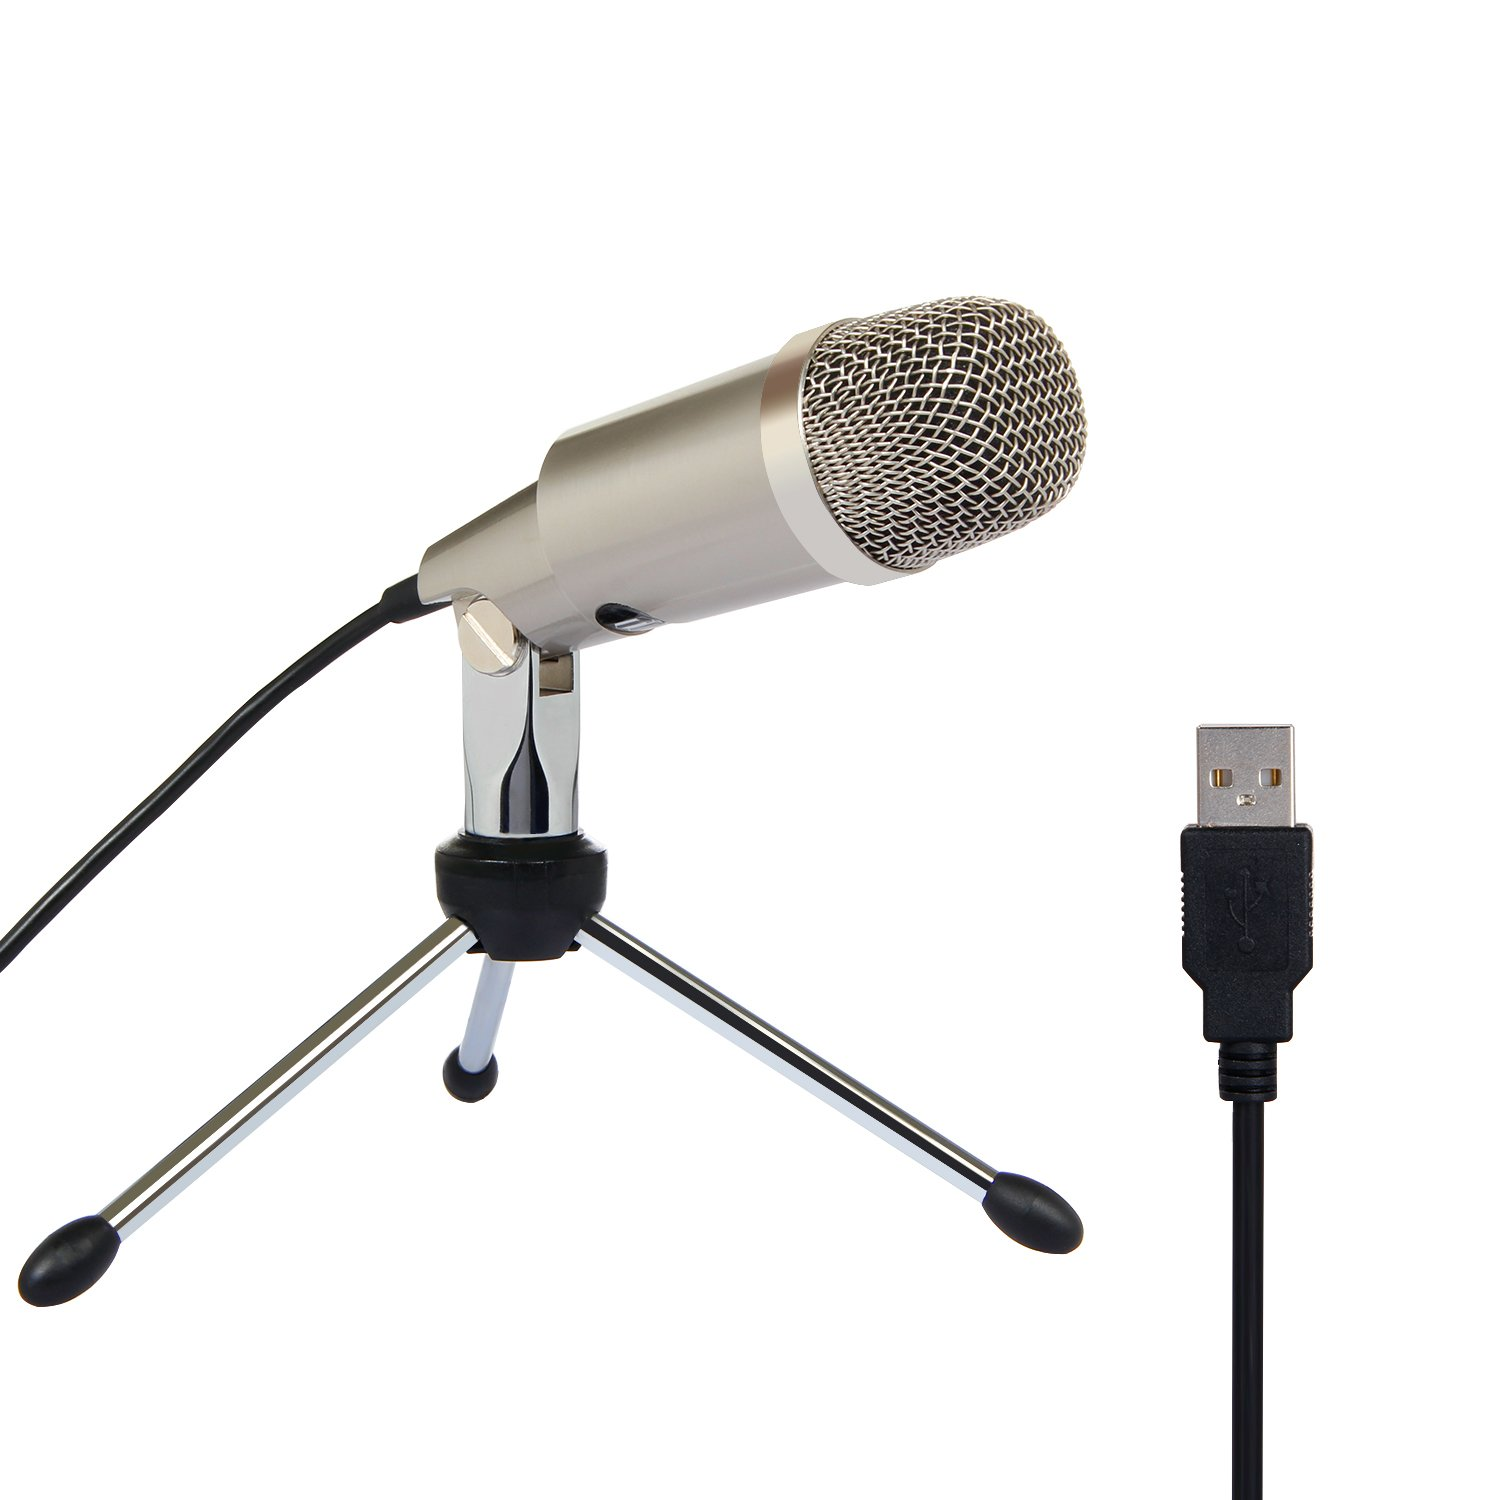 TONOR Microphone USB PC, Condenser Mic with Stand for Chatting/Skype/Youtube/Recording/Gaming/Podcasting for Macintosh or Windows Computer TN120494BL